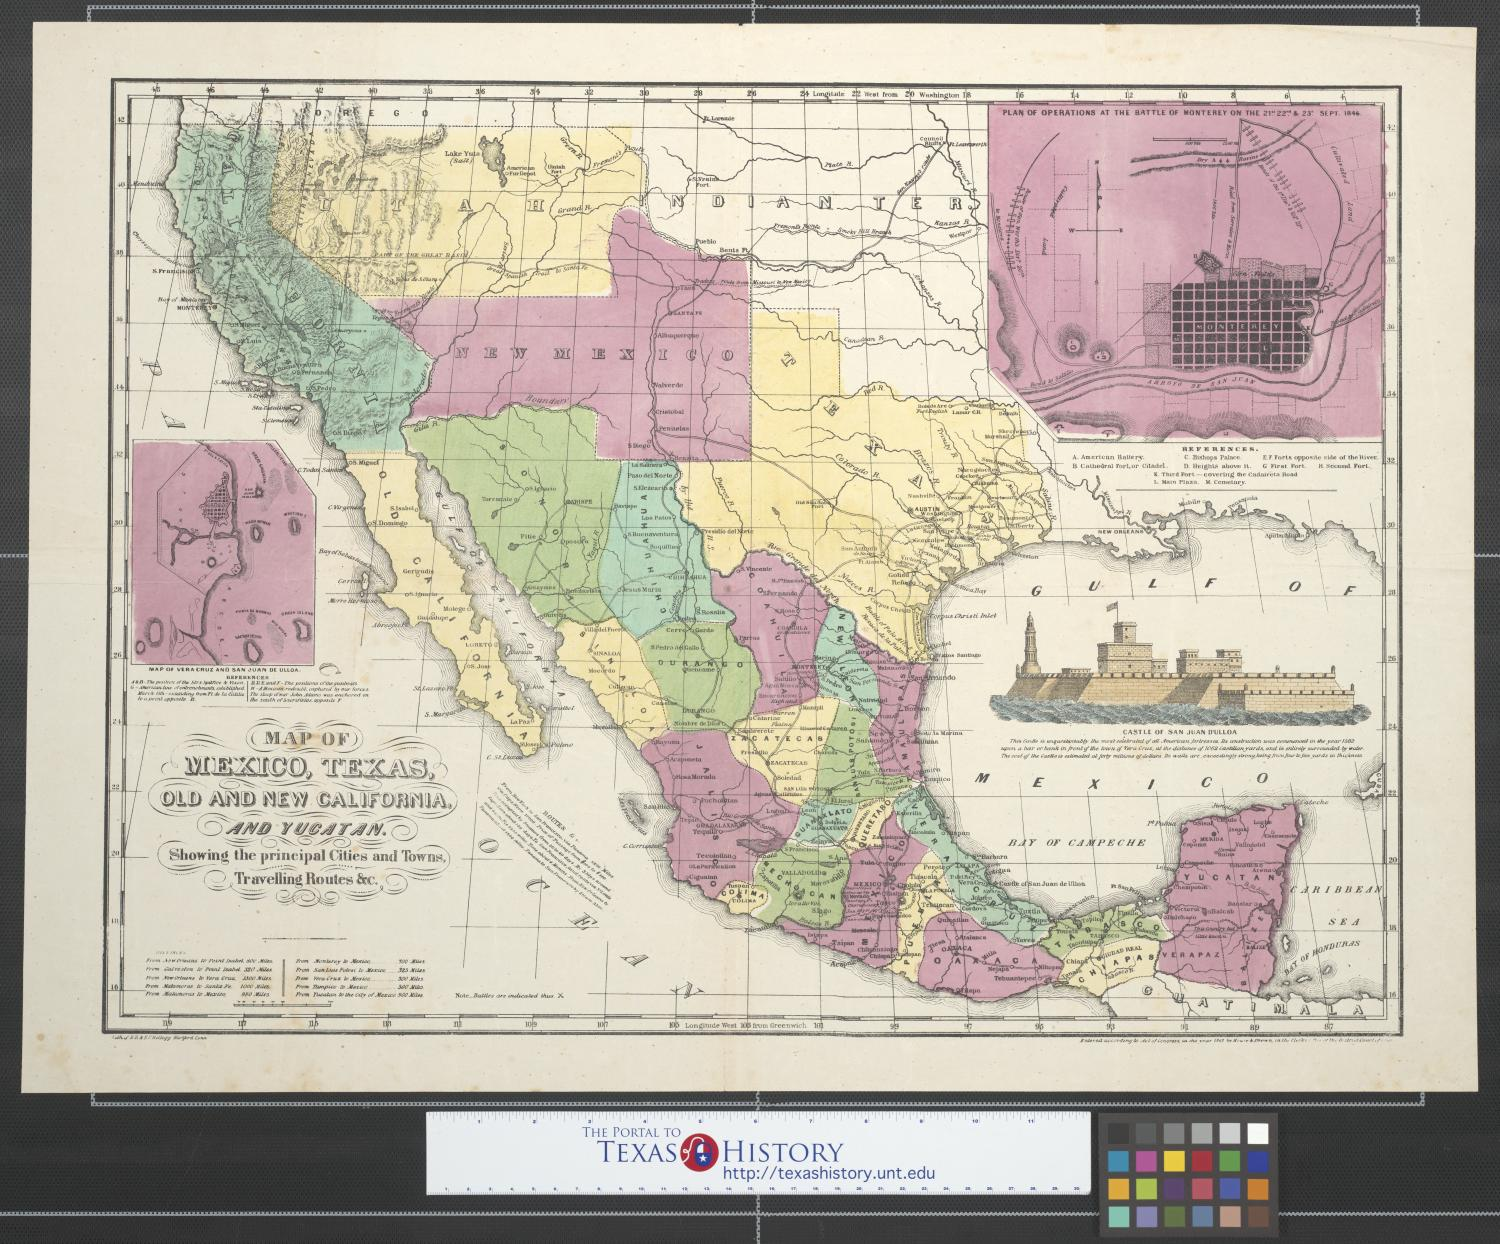 Map Of Mexico Texas Old And New California And Yucatan Showing - Map of california cities and towns